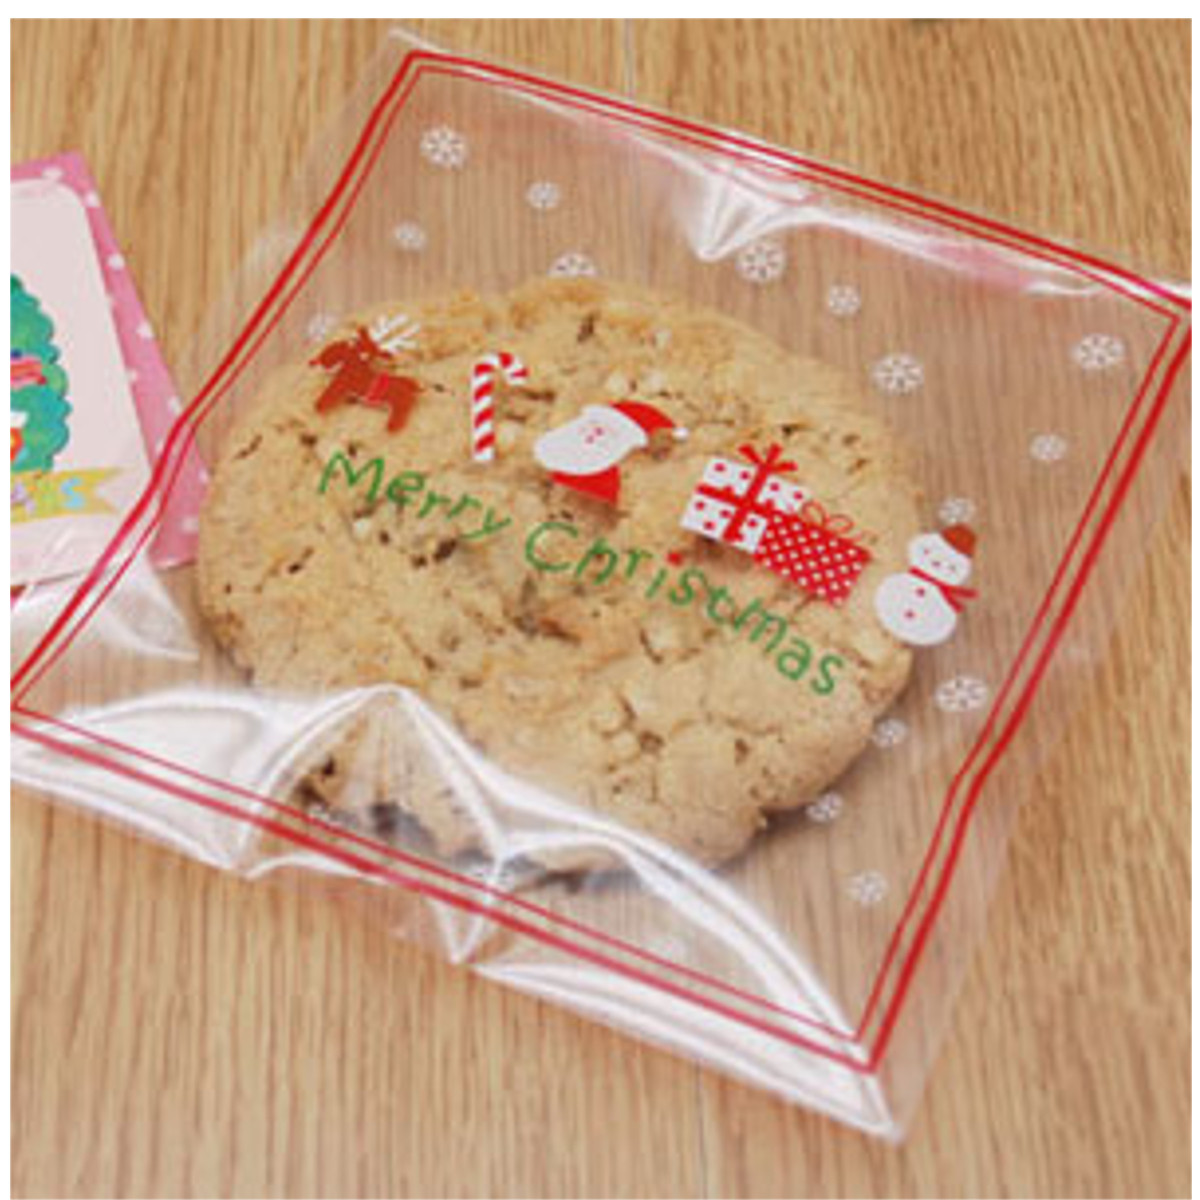 Pcs christmas biscuit candy gift cookie sweet present